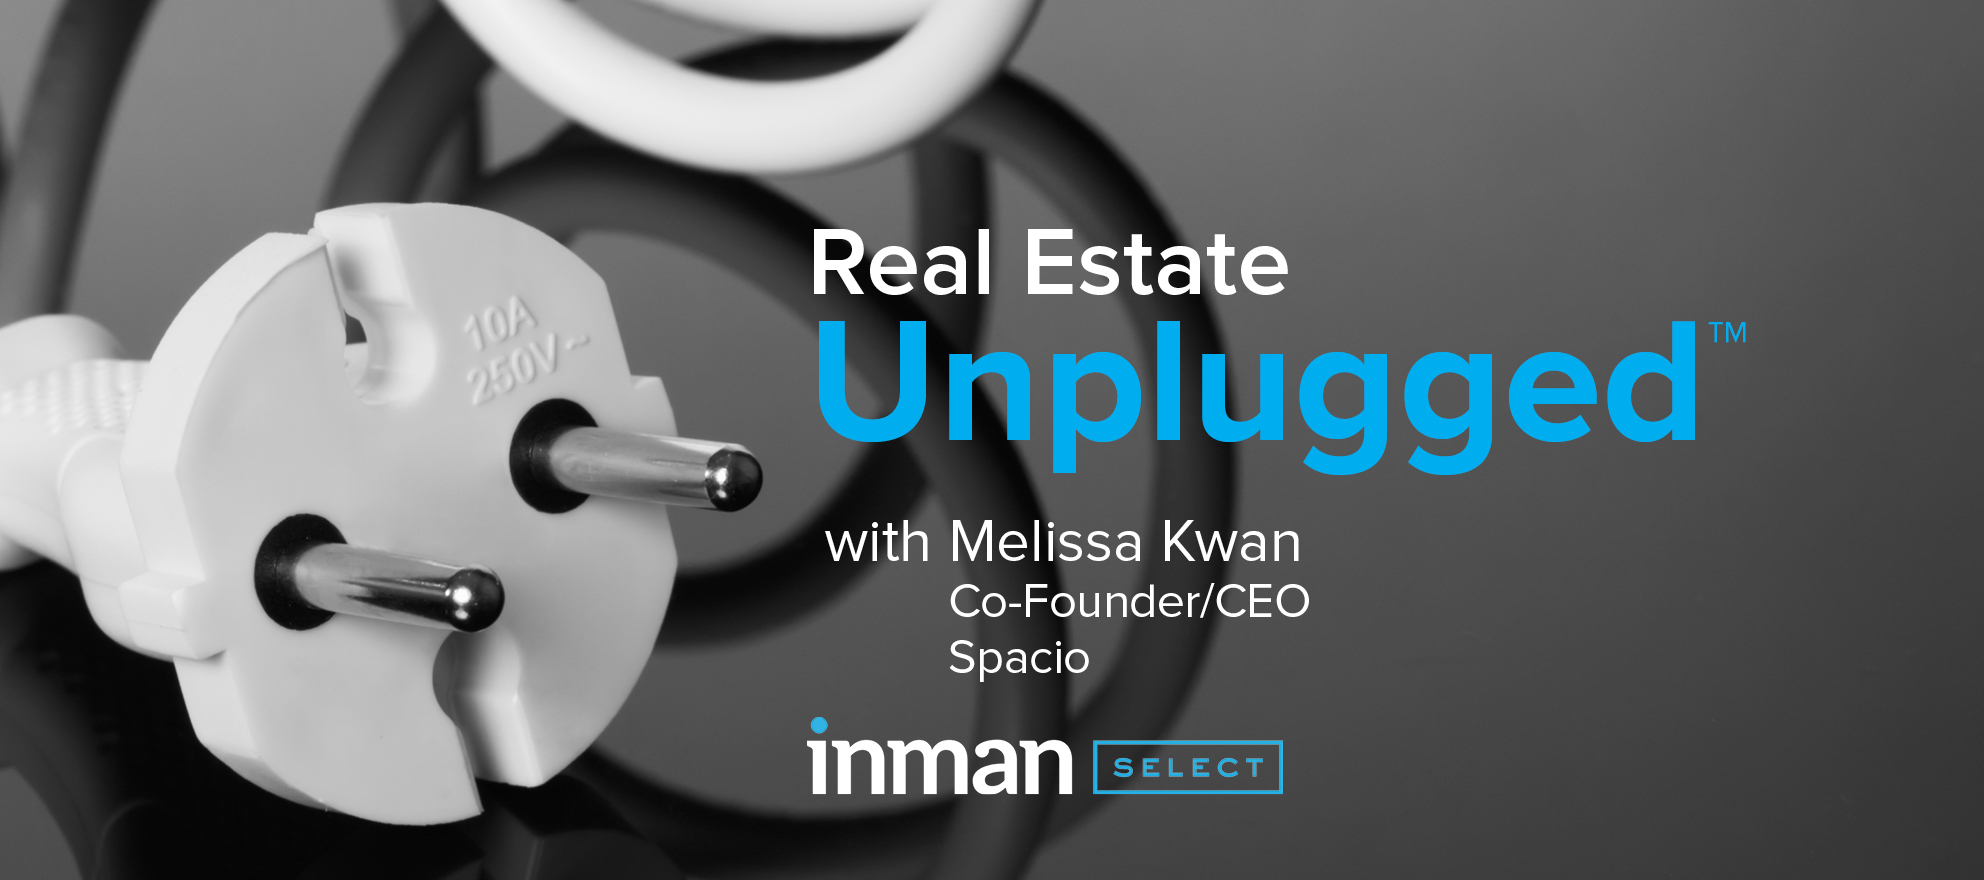 Melissa Kwan on her real estate idol and disruptive technology